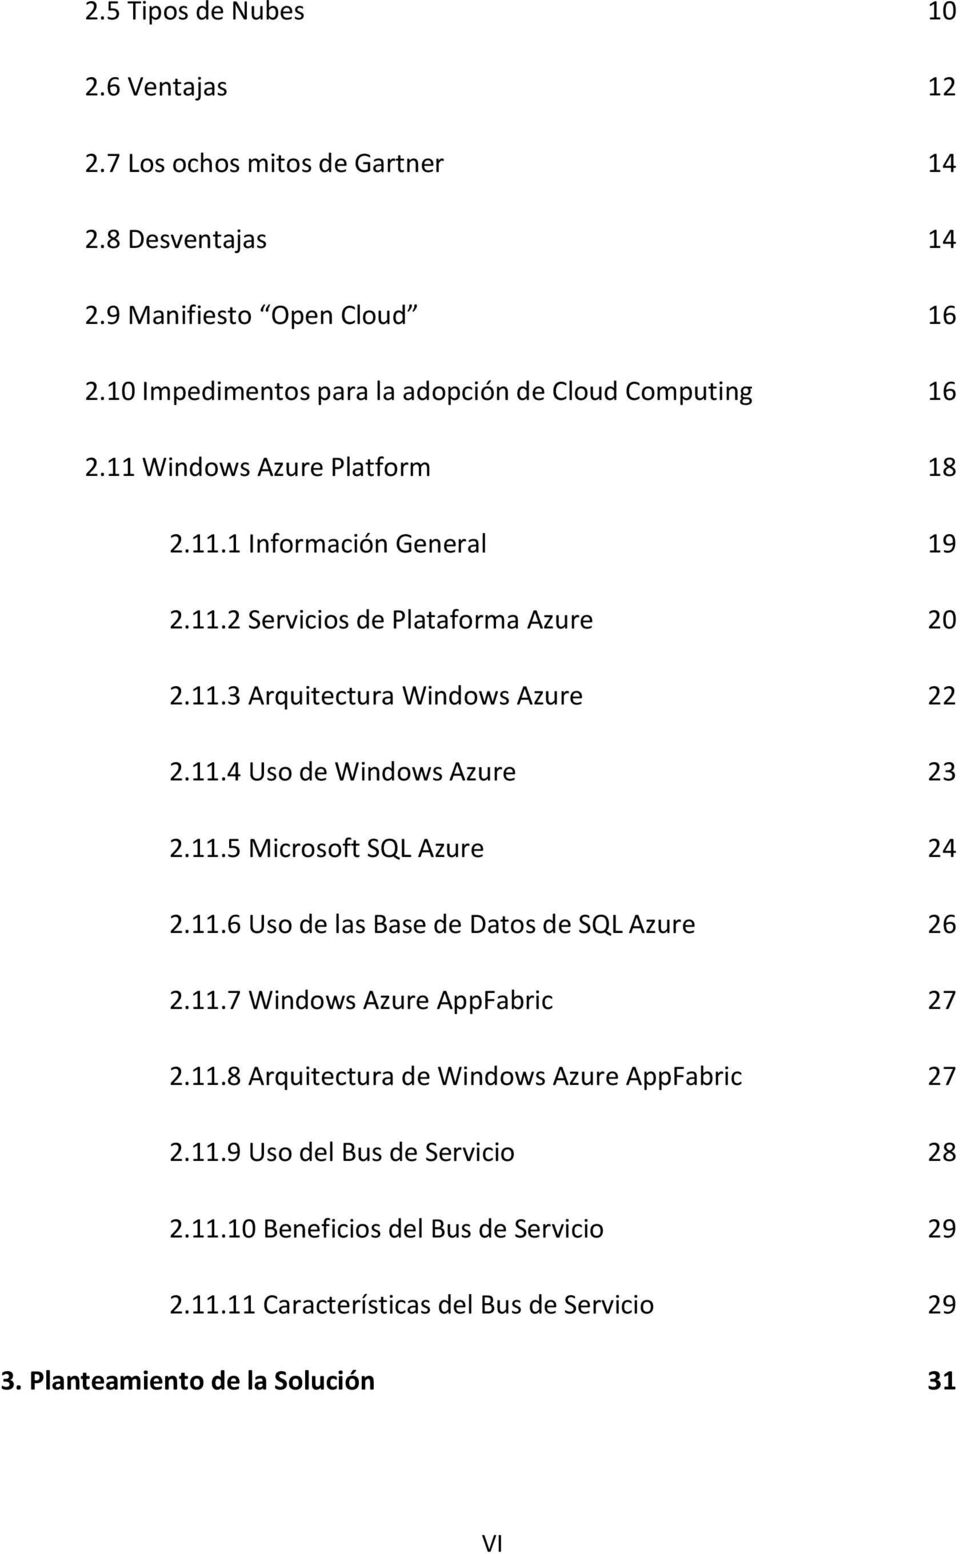 11.4 Uso de Windows Azure 23 2.11.5 Microsoft SQL Azure 24 2.11.6 Uso de las Base de Datos de SQL Azure 26 2.11.7 Windows Azure AppFabric 27 2.11.8 Arquitectura de Windows Azure AppFabric 27 2.